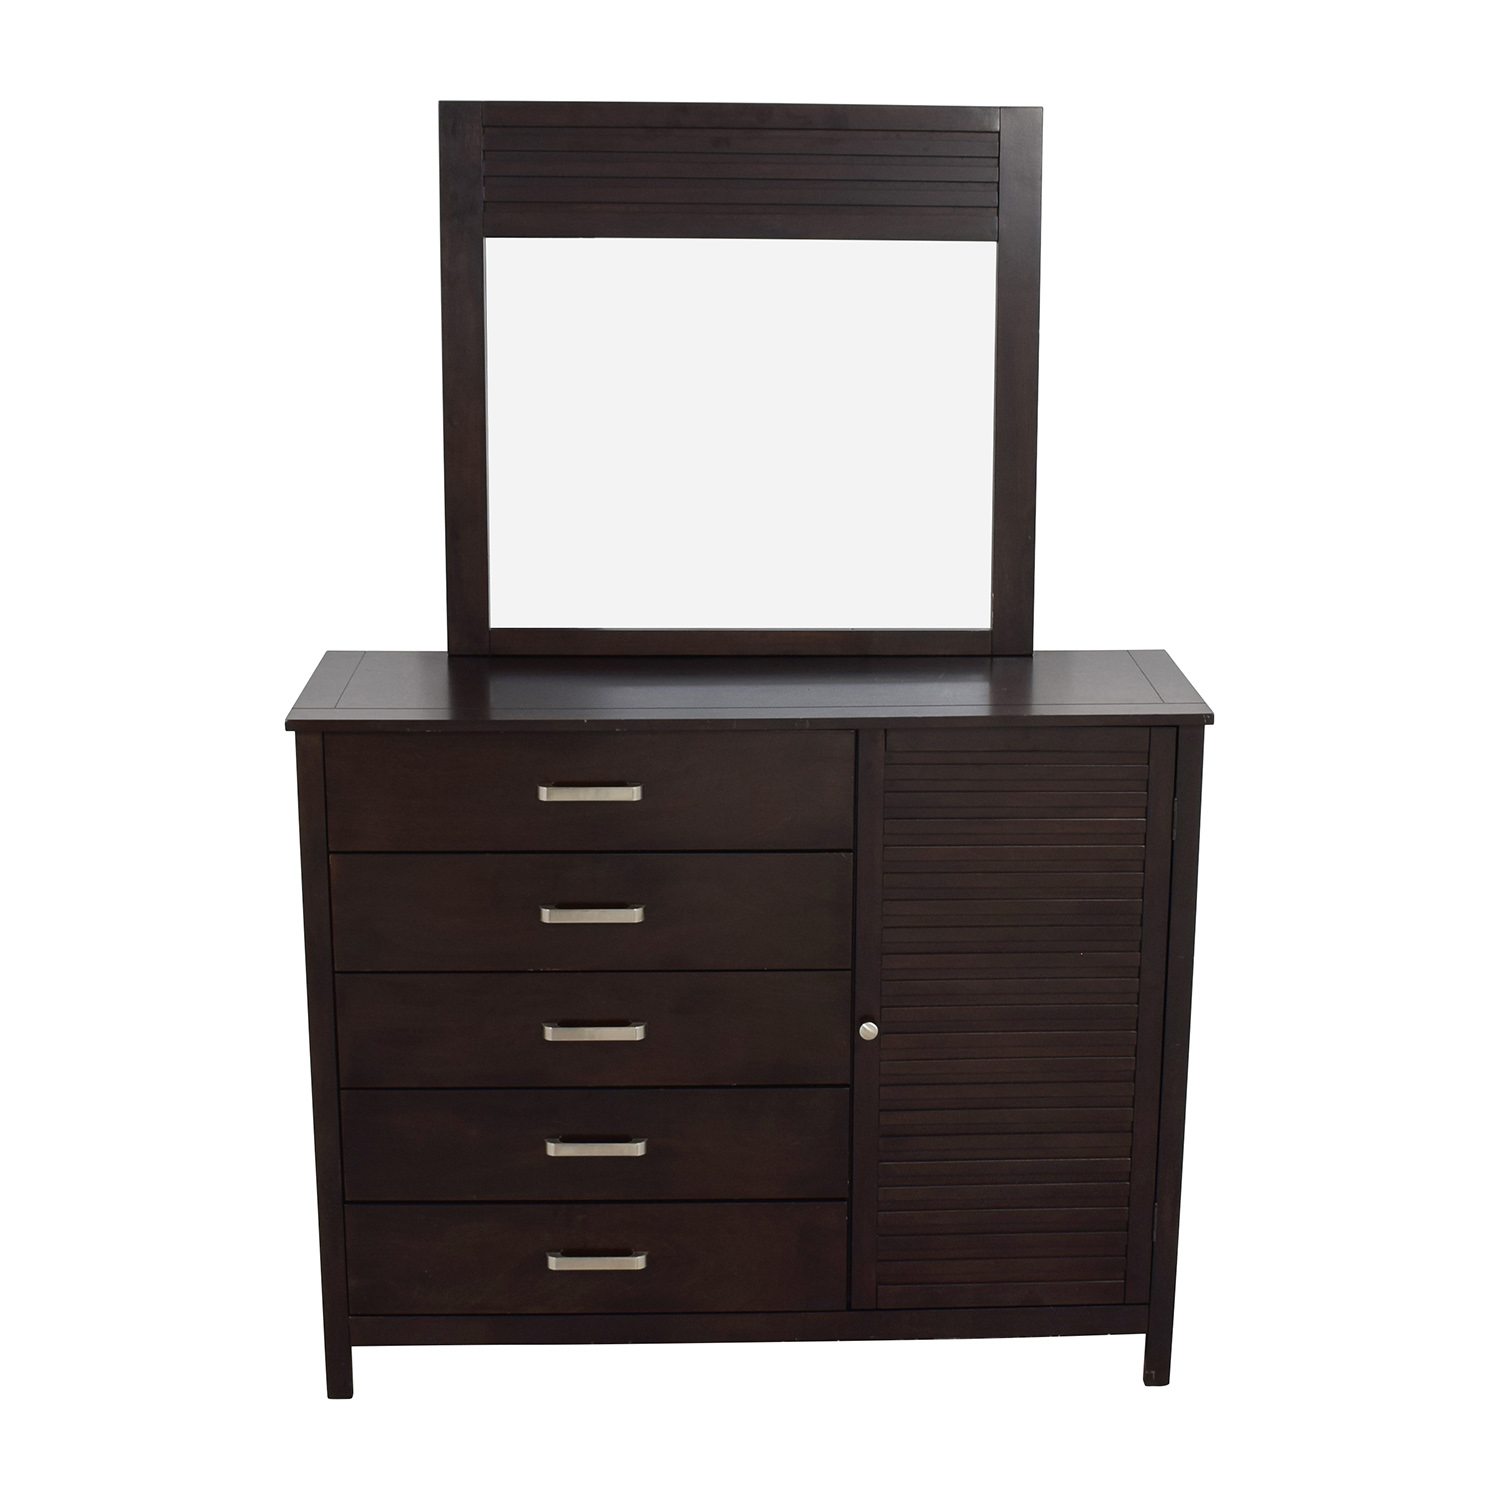 buy Rooms To Go Rooms to Go Espresso Grove Five-Drawer Dresser with Mirror online